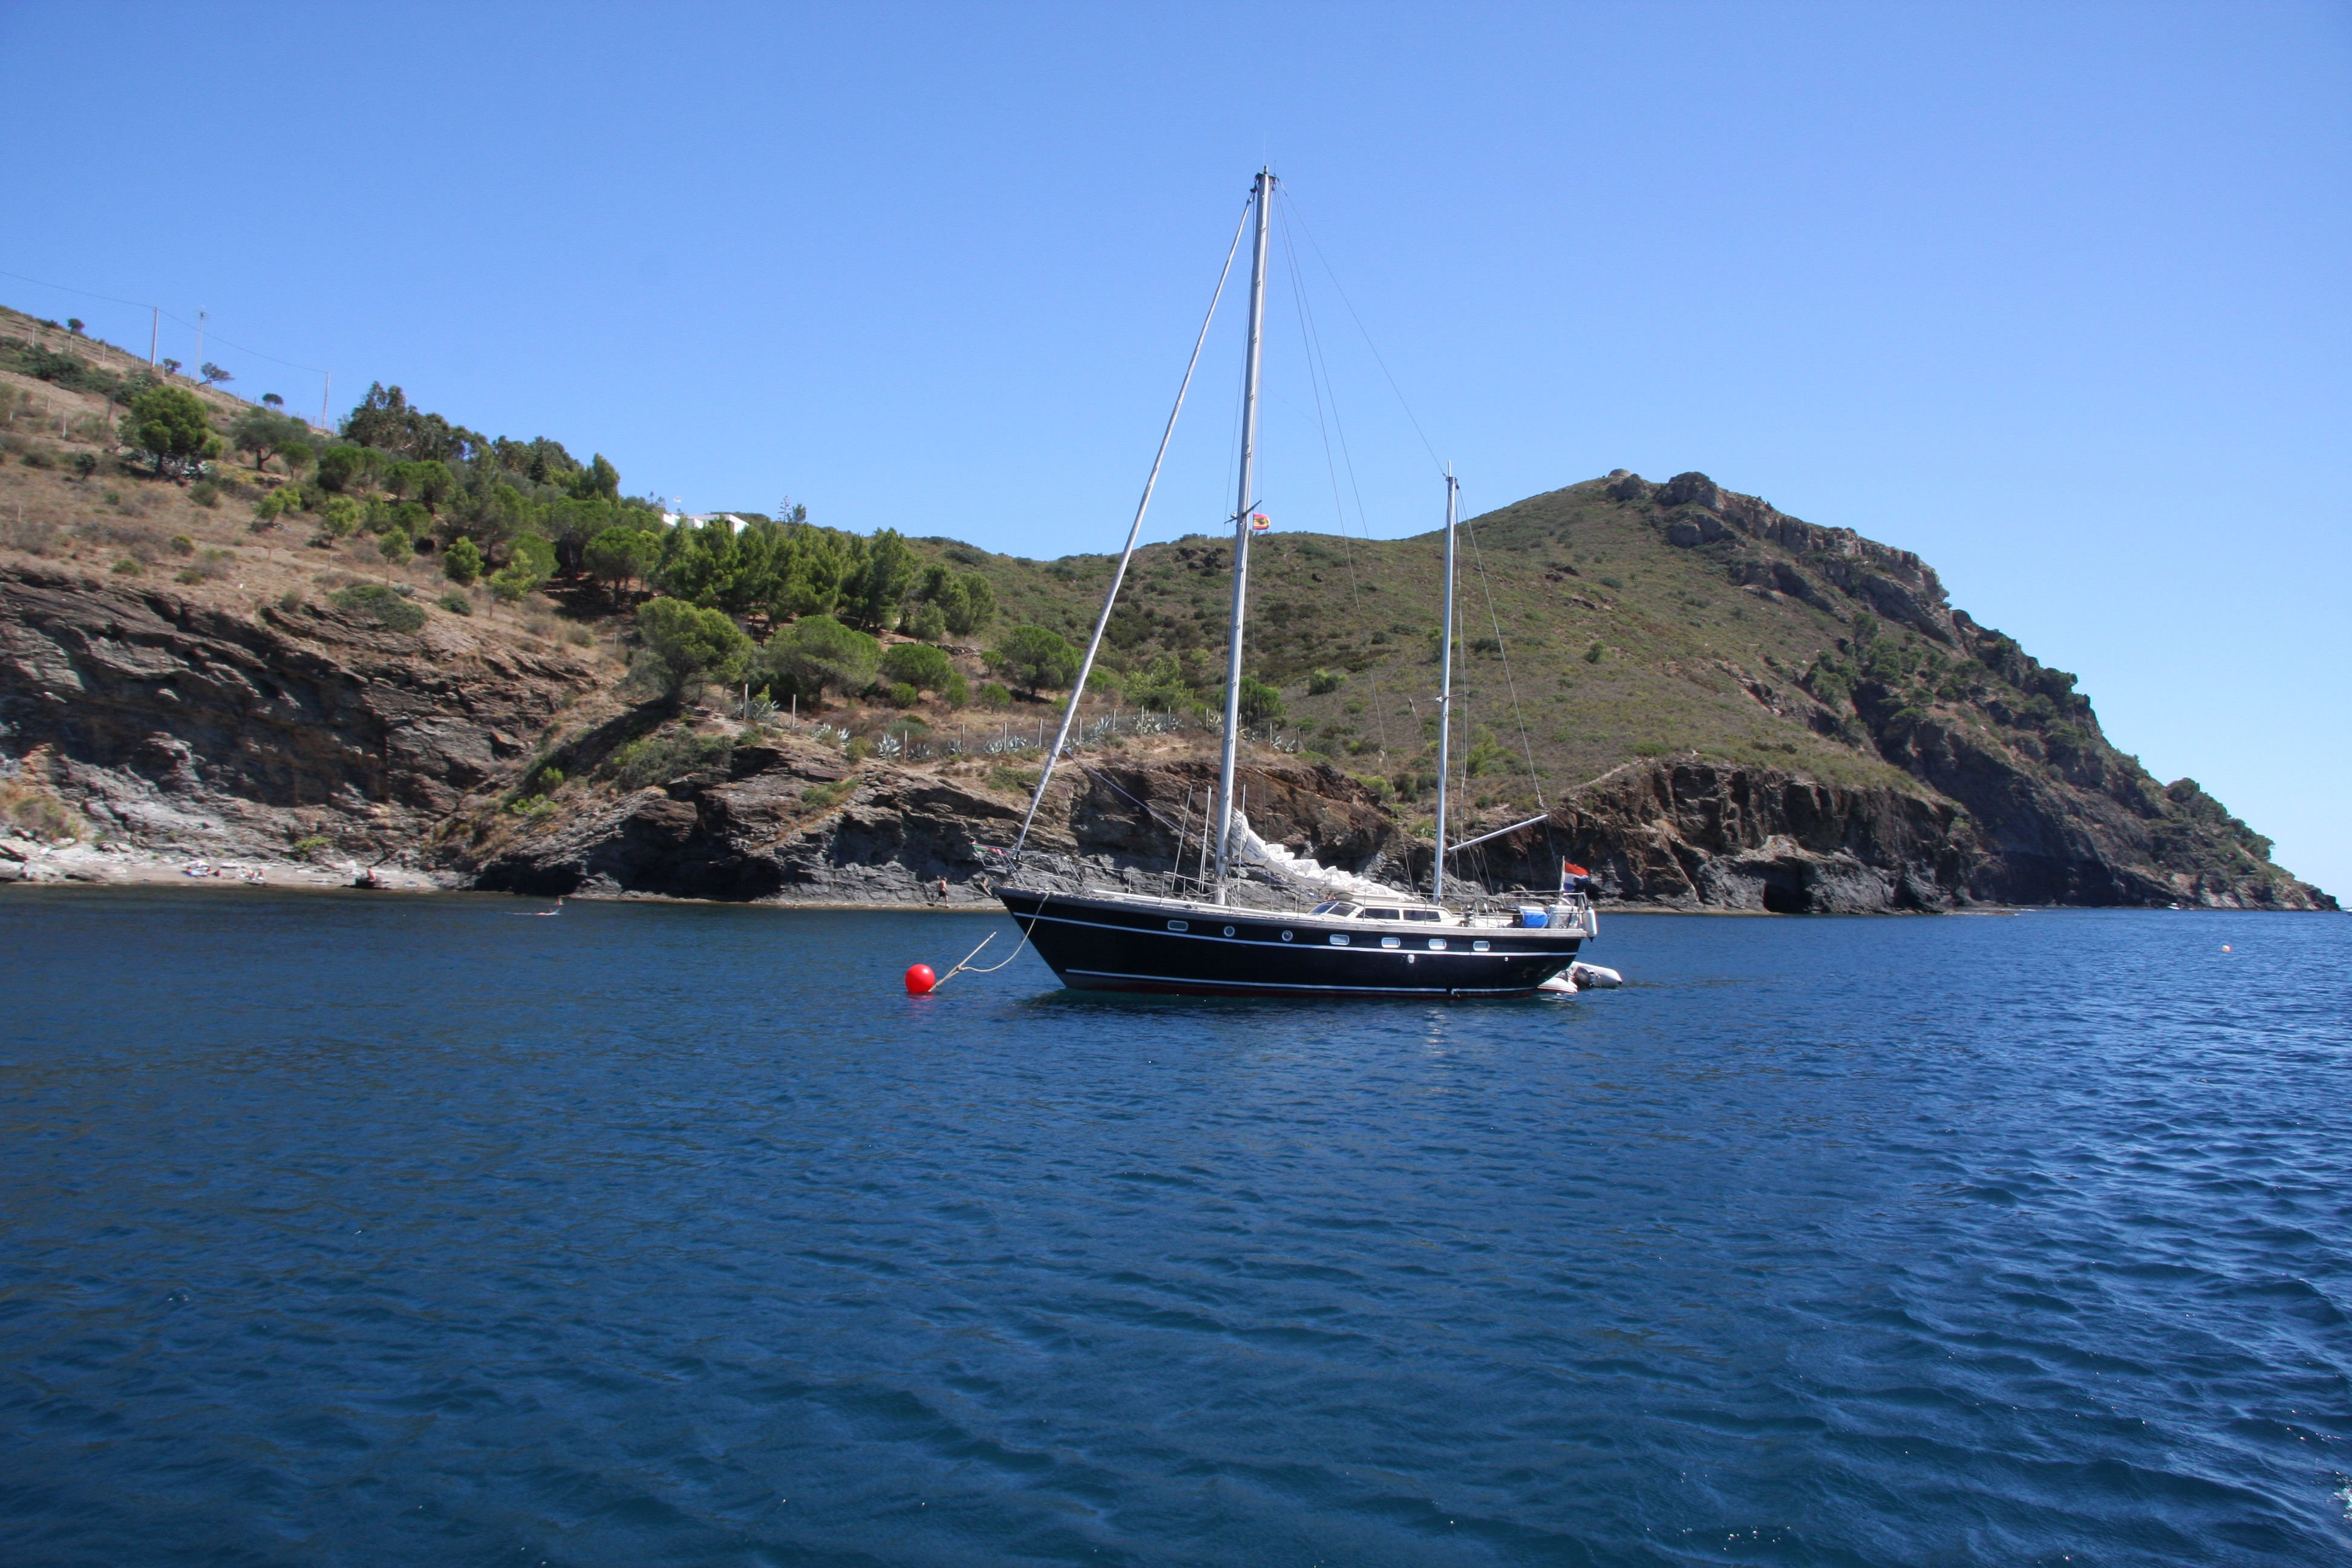 Sailing boat moored in bay